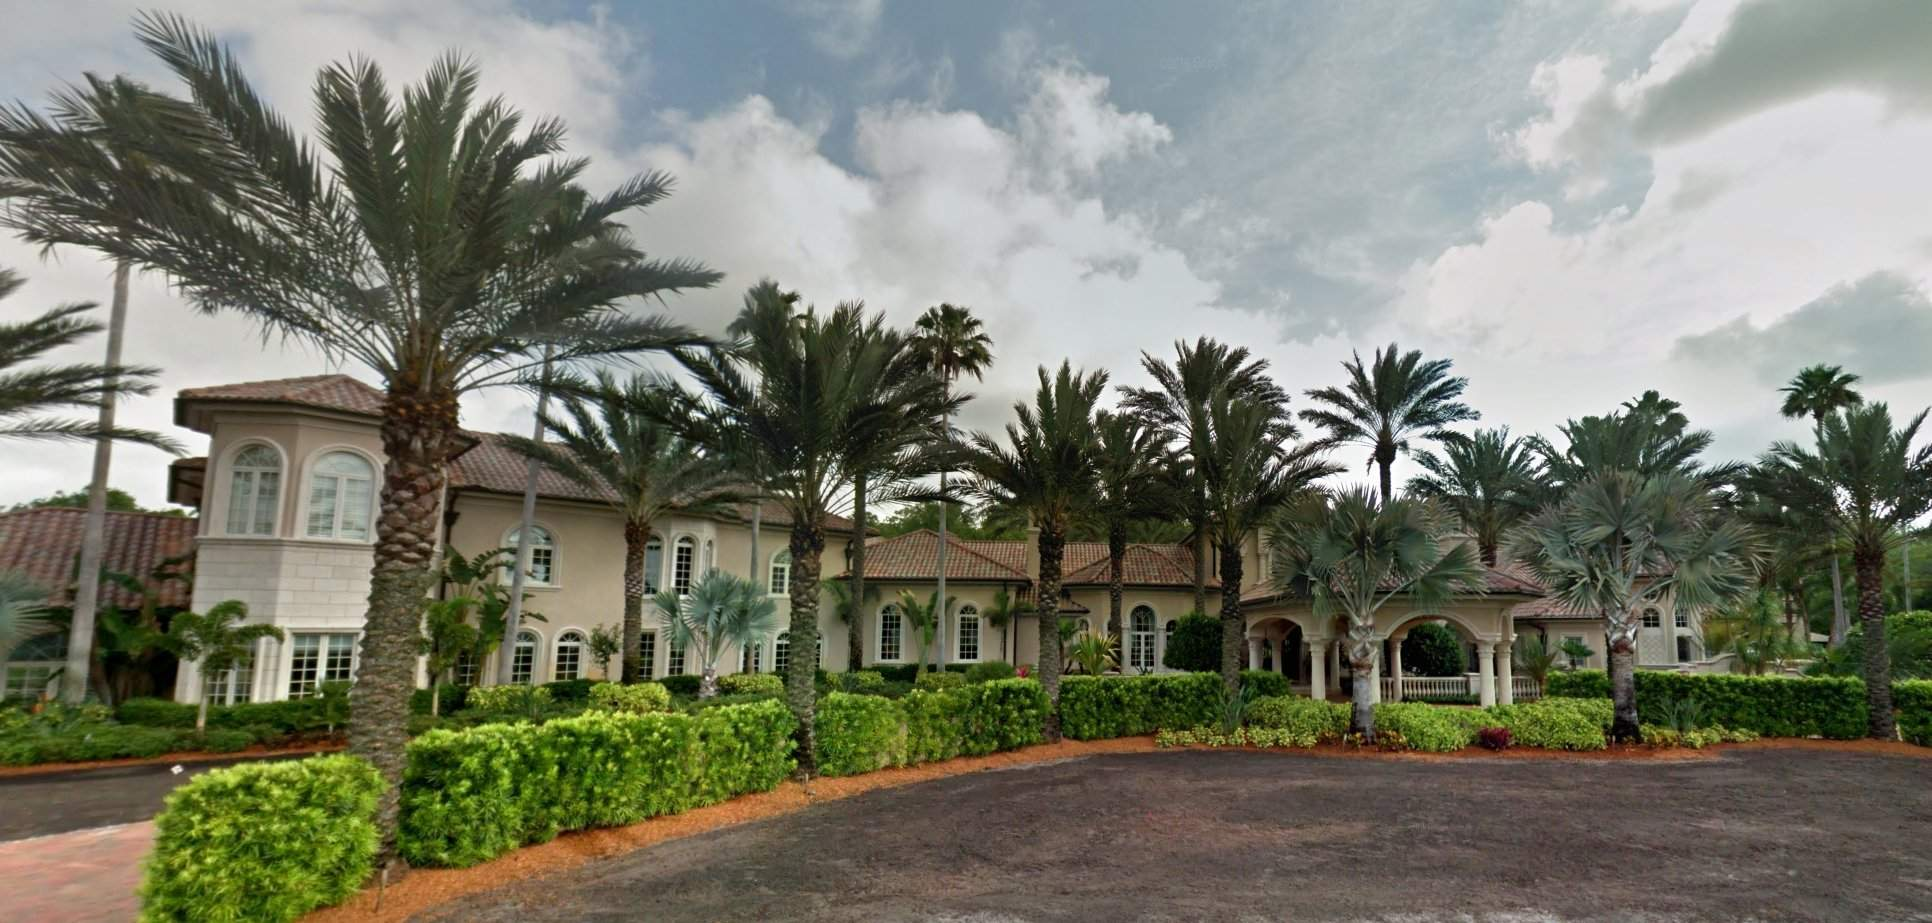 Peachy Seller Of Tampa Bay Mansion Paid Buyer 300 000 To Get Out Download Free Architecture Designs Rallybritishbridgeorg